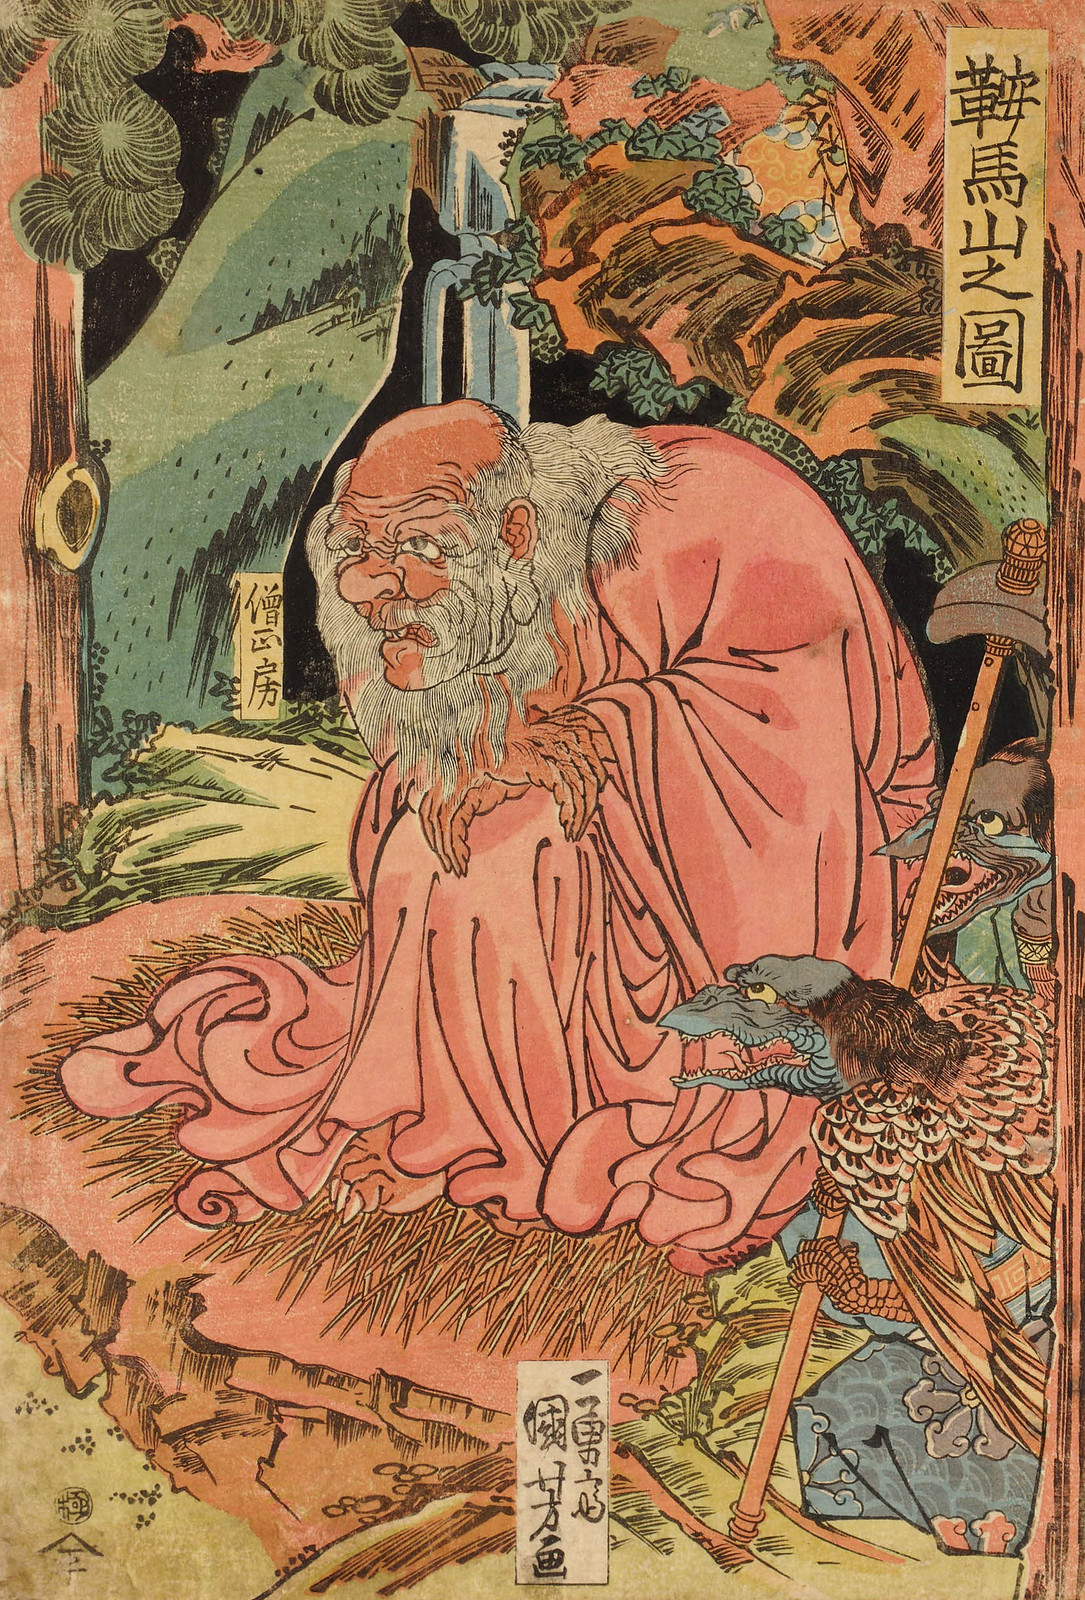 Utagawa Kuniyoshi - Prince Yoshitsune (Ushiwaka-maru) practising fencing with the tengu under the direction of their king, Sojo-bo, with Kisanda in attendance, Edo Period